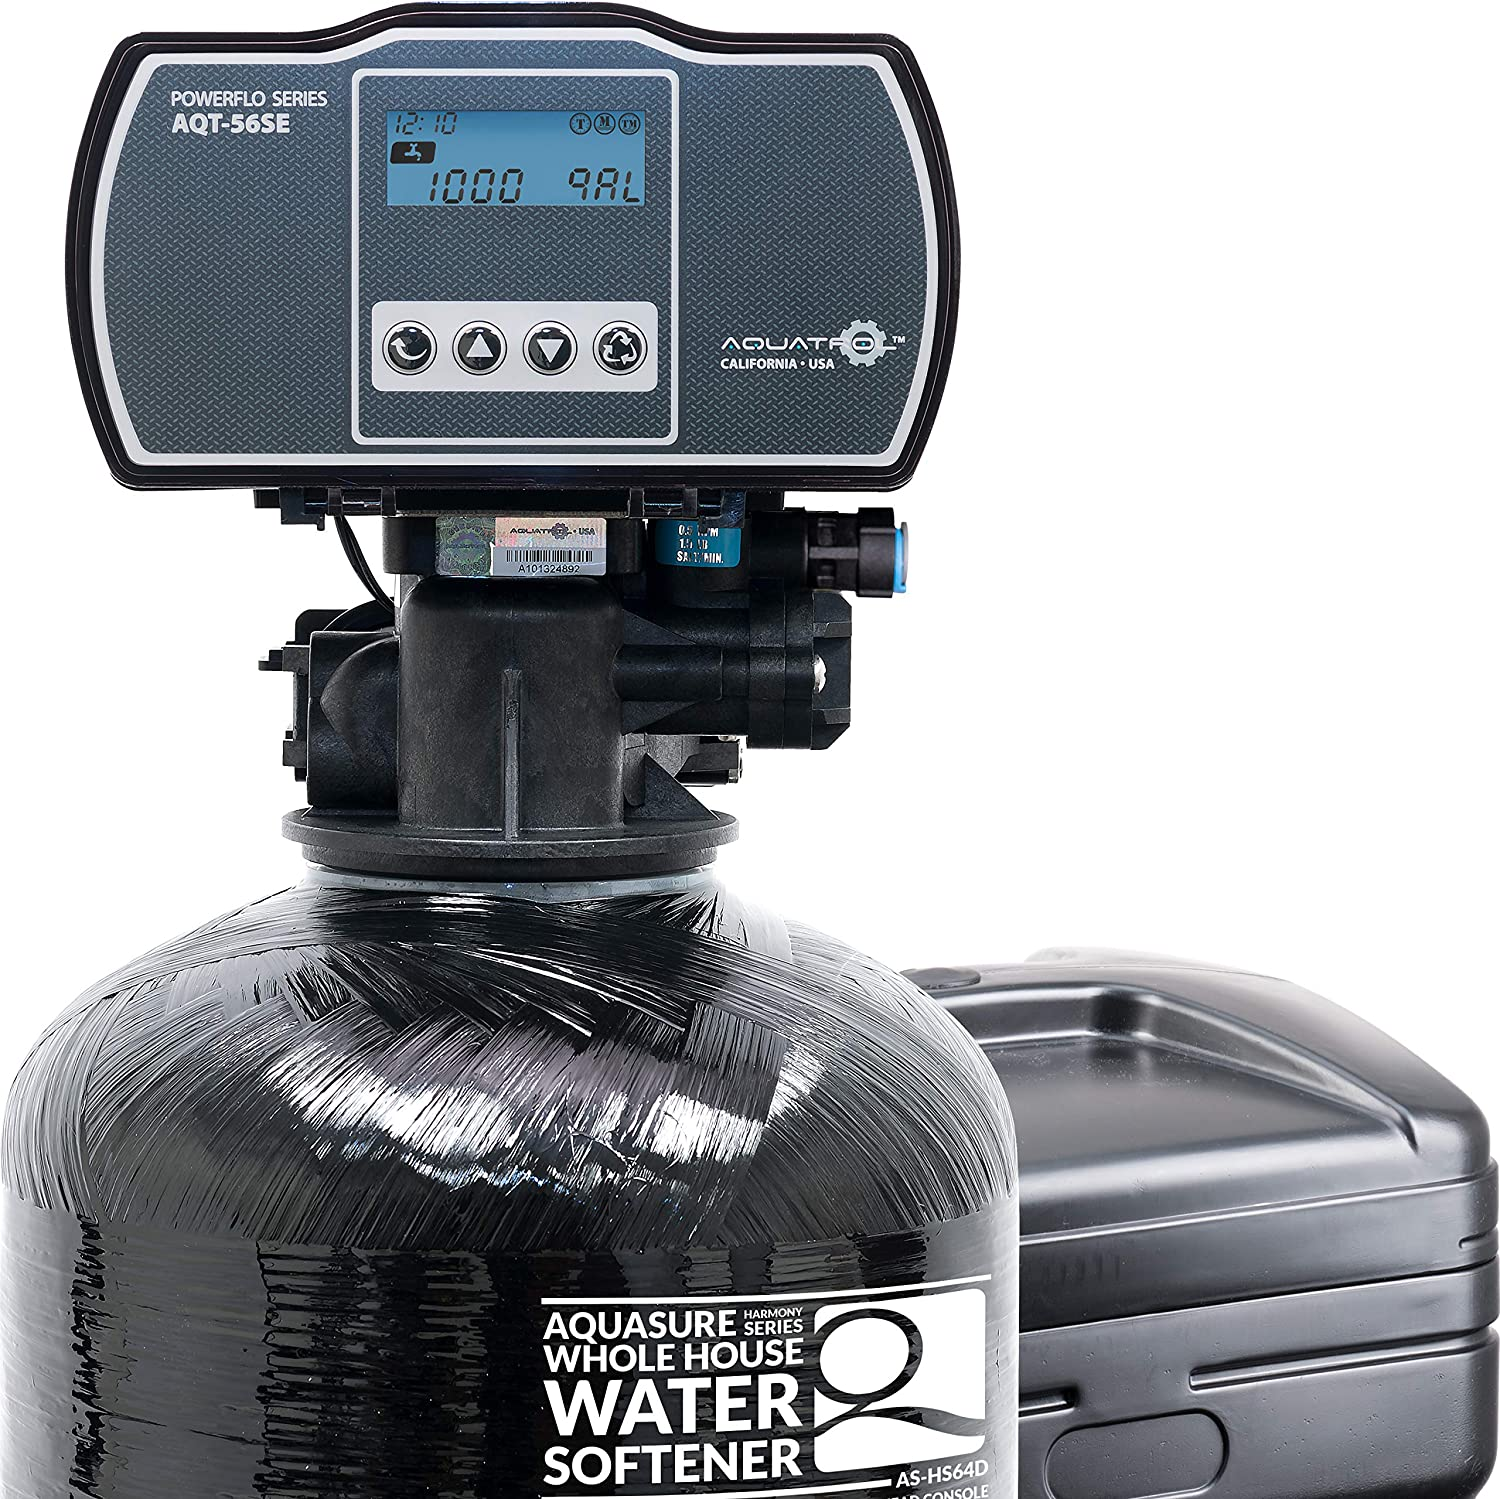 Aquasure Harmony Series 48,000 Grains Water Softener with High Efficiency Digital Metered Control Head (48,000 Grains)